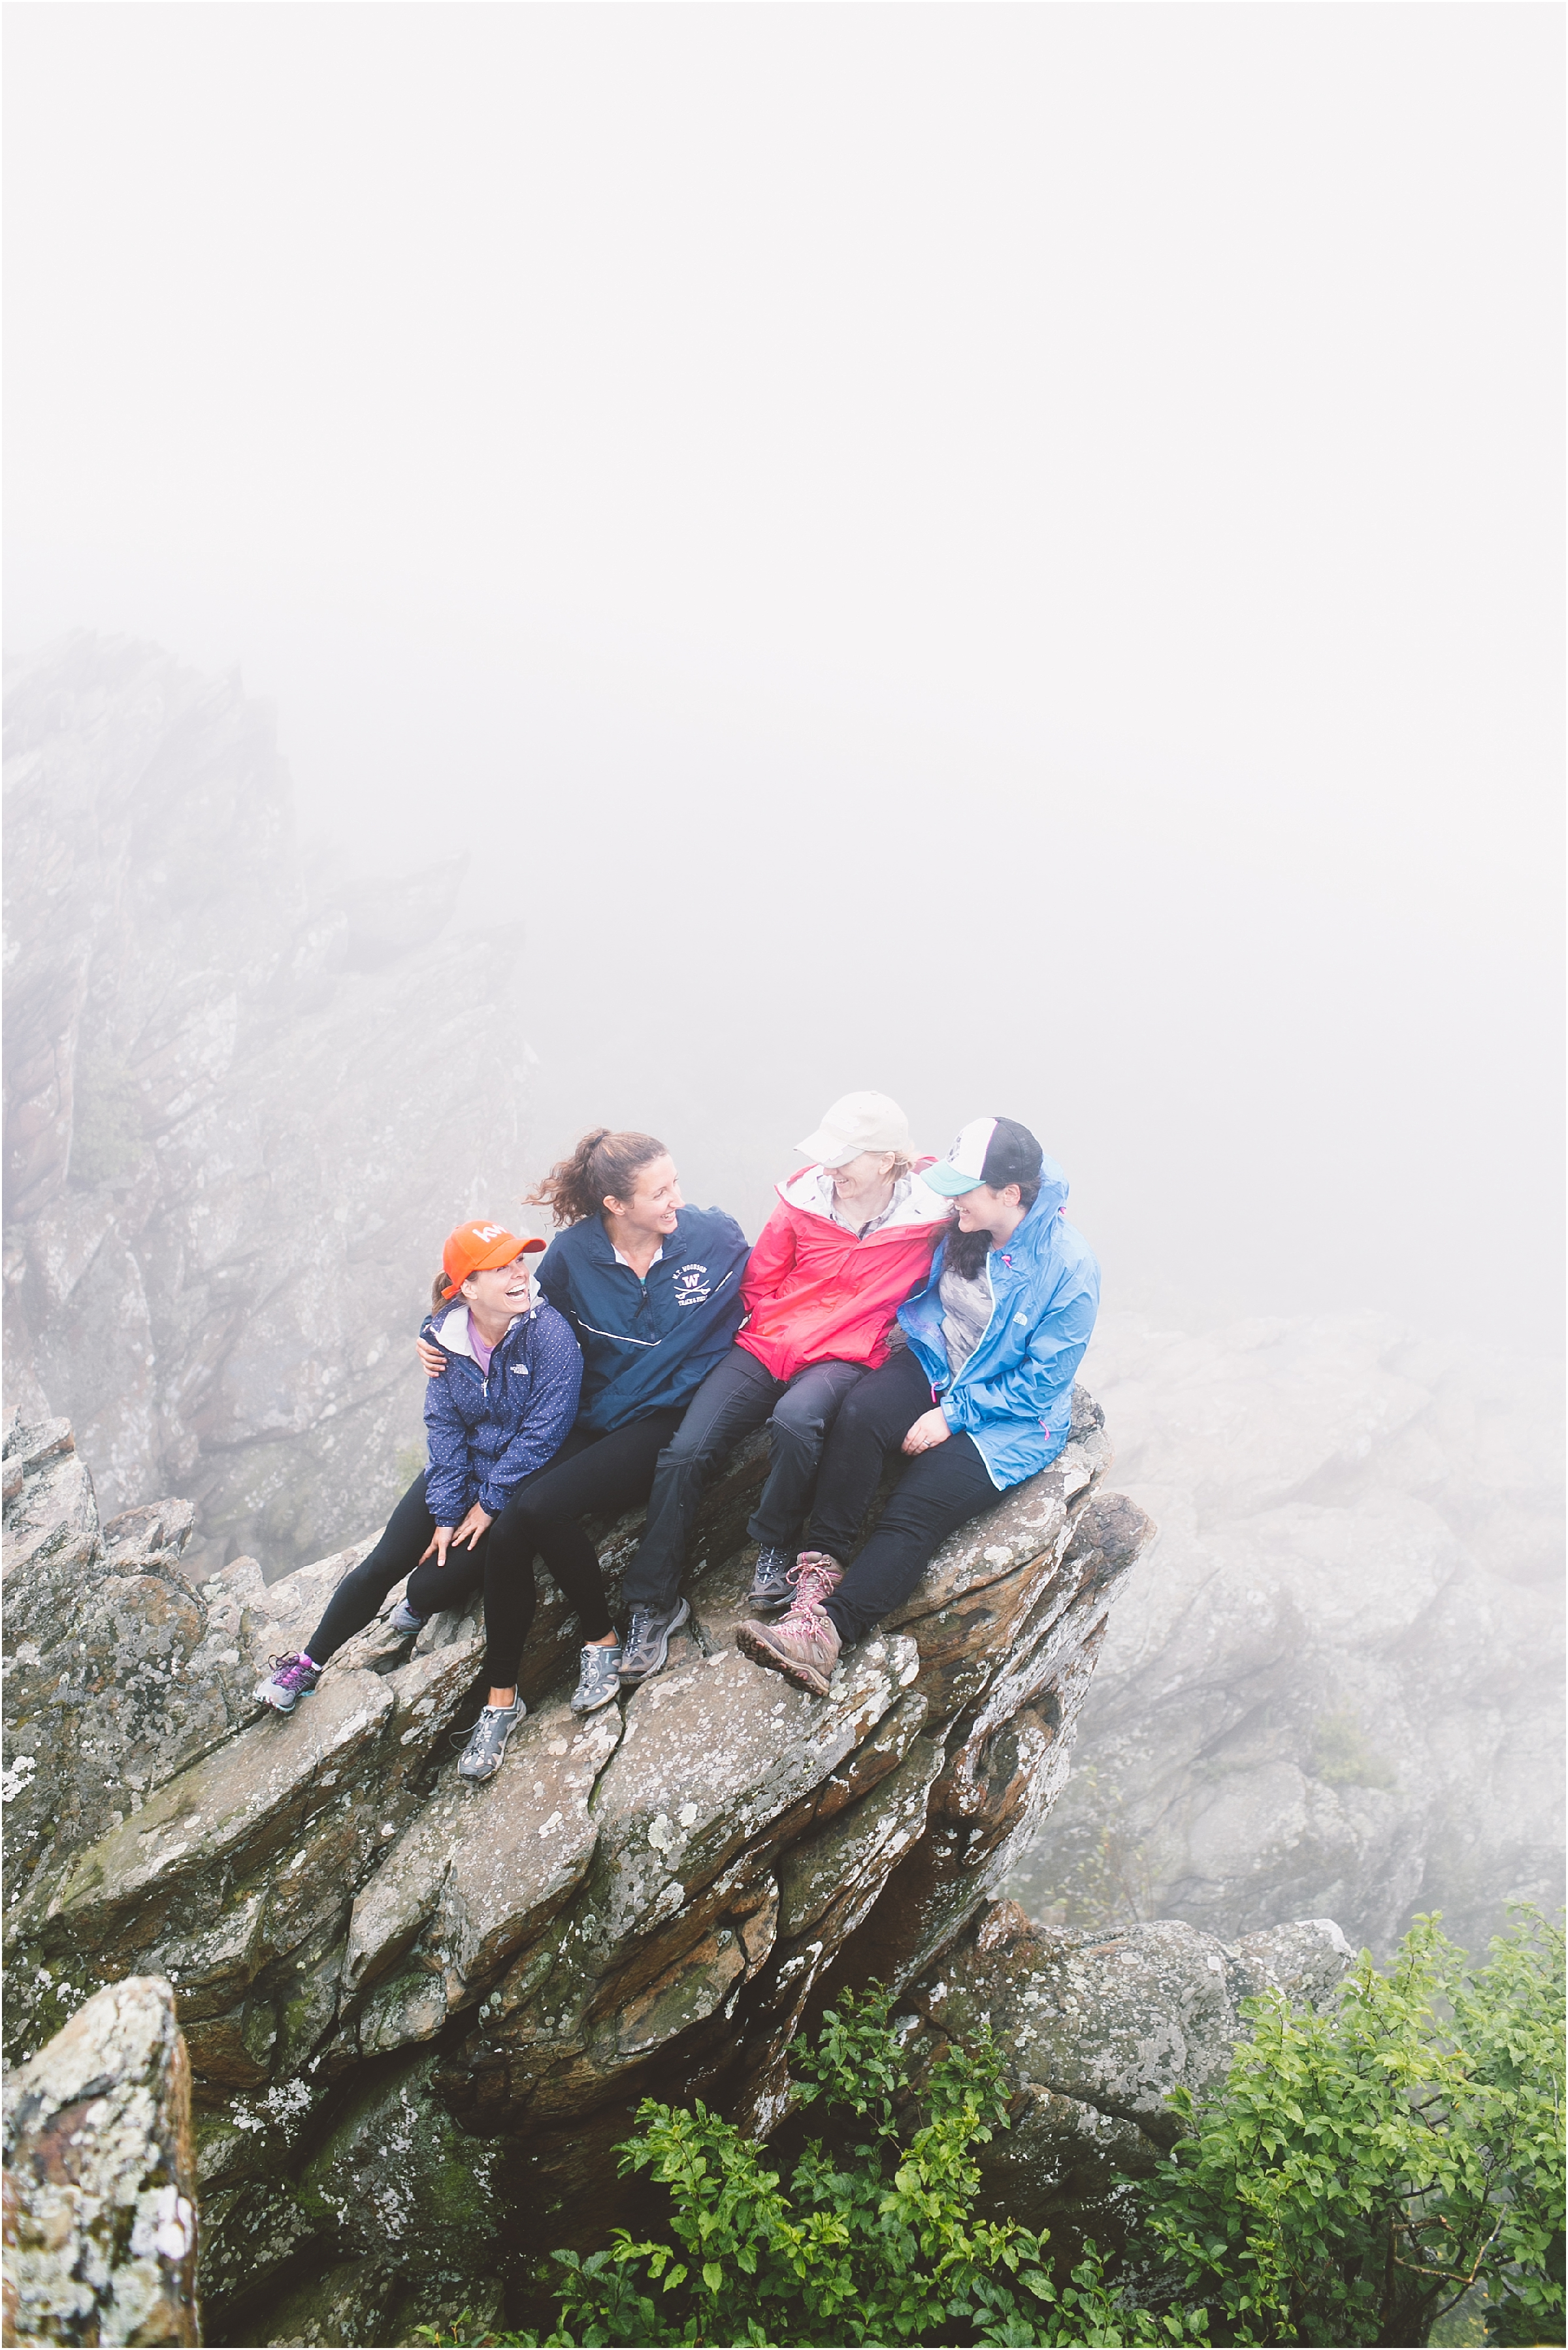 humpback rocks hike women hiking group her hike collective blue ridge parkway